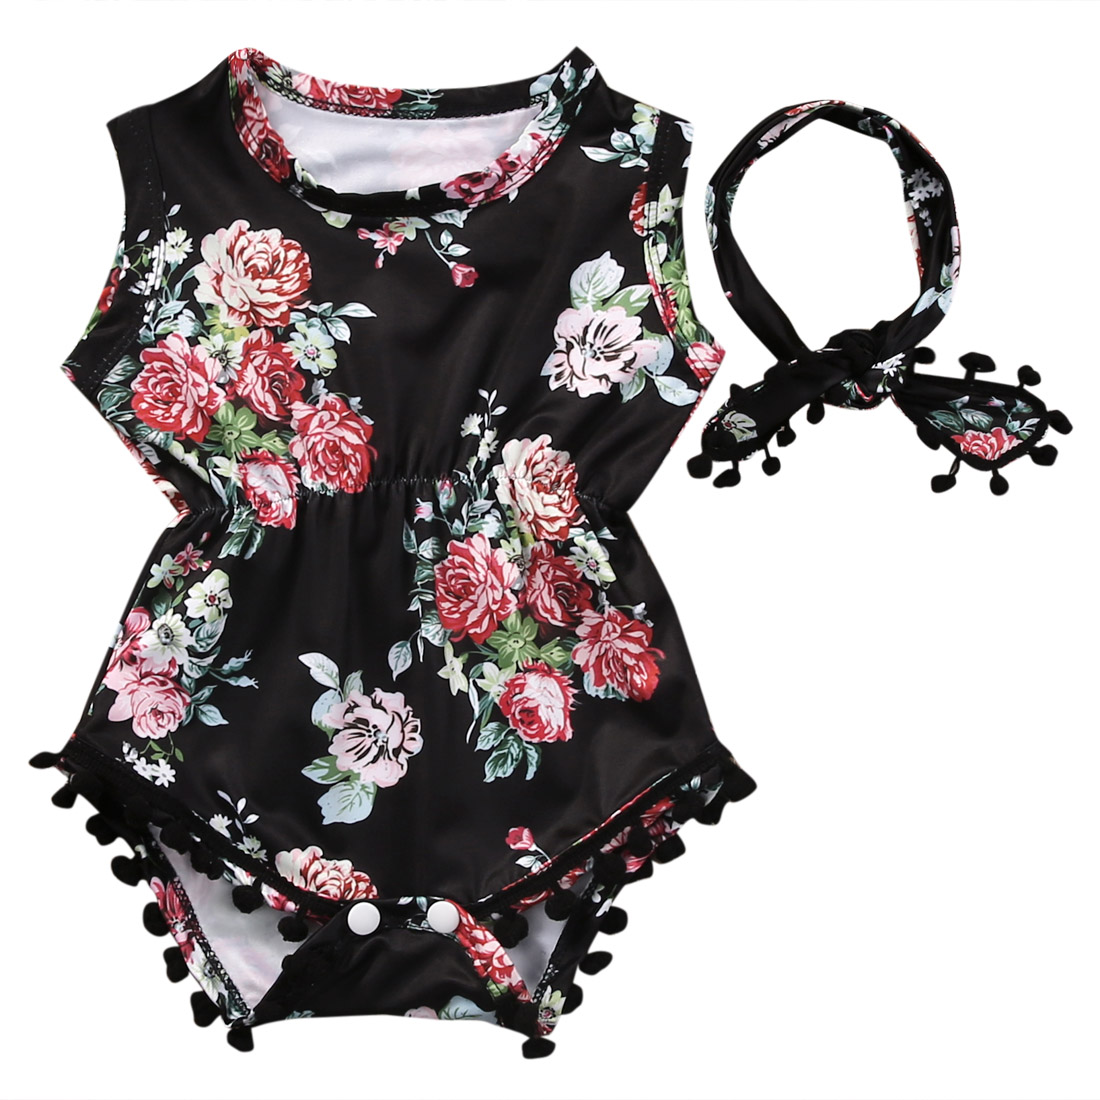 Emmababy Summer Children Clothing Floral Toddler Baby Girls   Romper   Jumpsuit Pirncess Girls Sunsuit Outfits Clothes